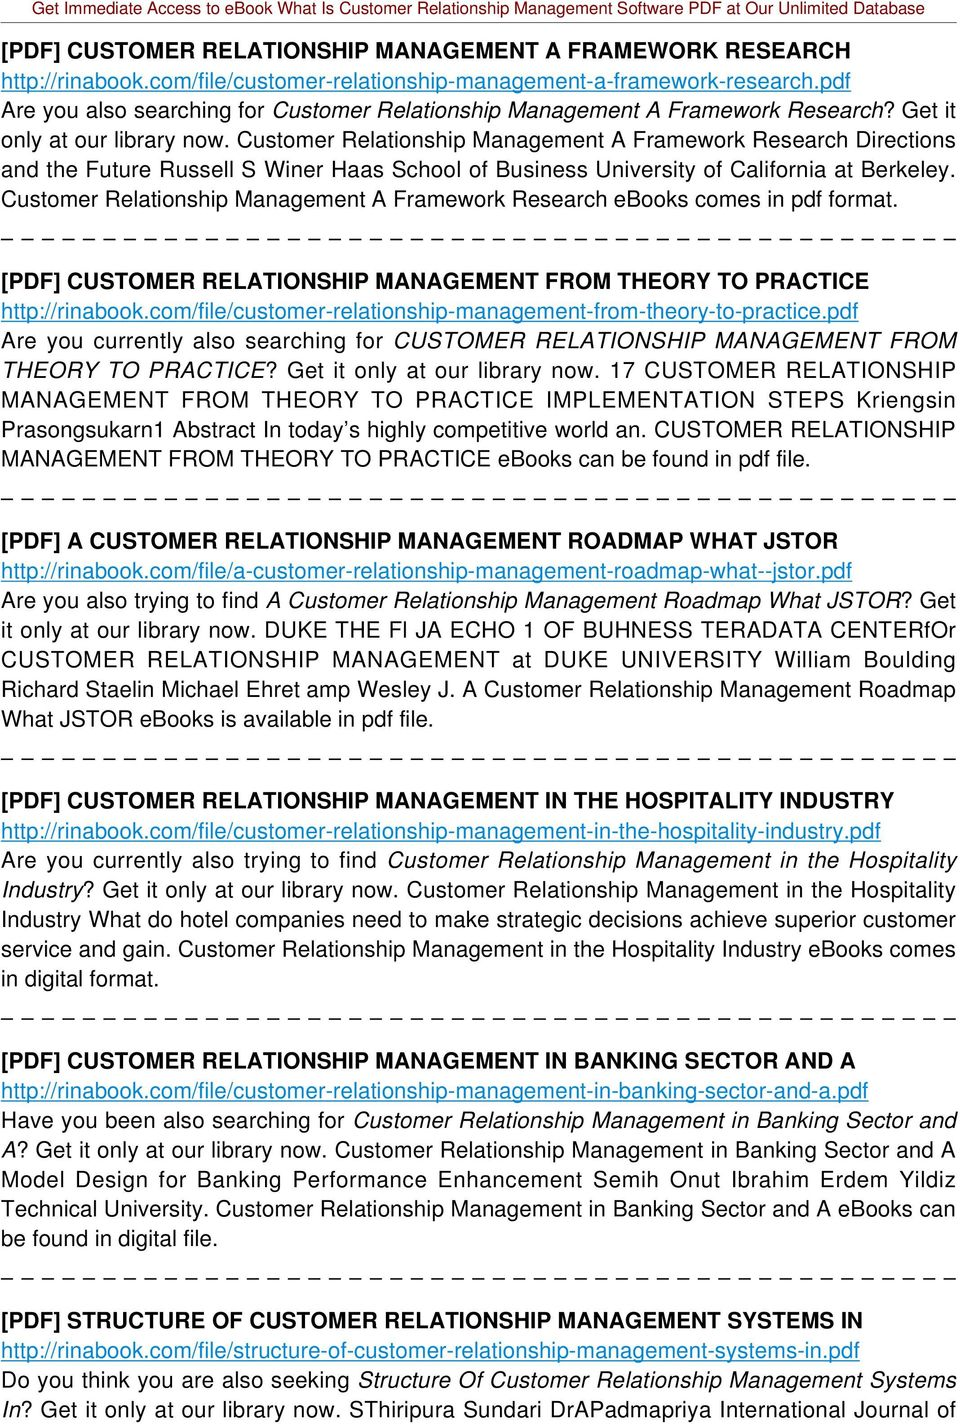 Customer Relationship Management A Framework Research Directions and the Future Russell S Winer Haas School of Business University of California at Berkeley.